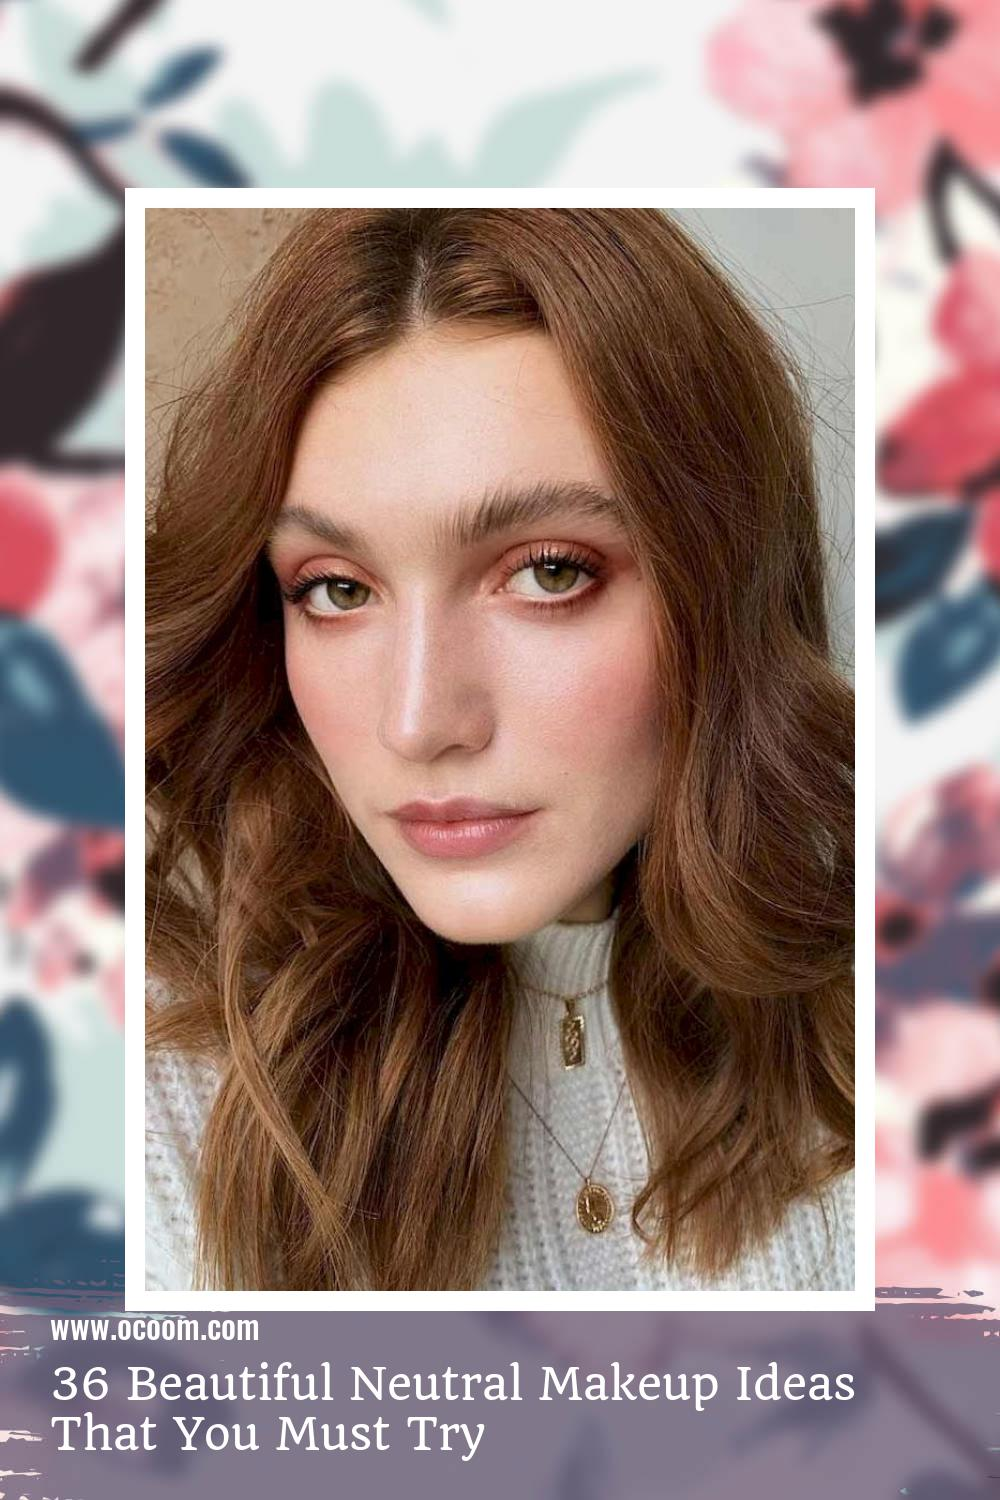 36 Beautiful Neutral Makeup Ideas That You Must Try 10